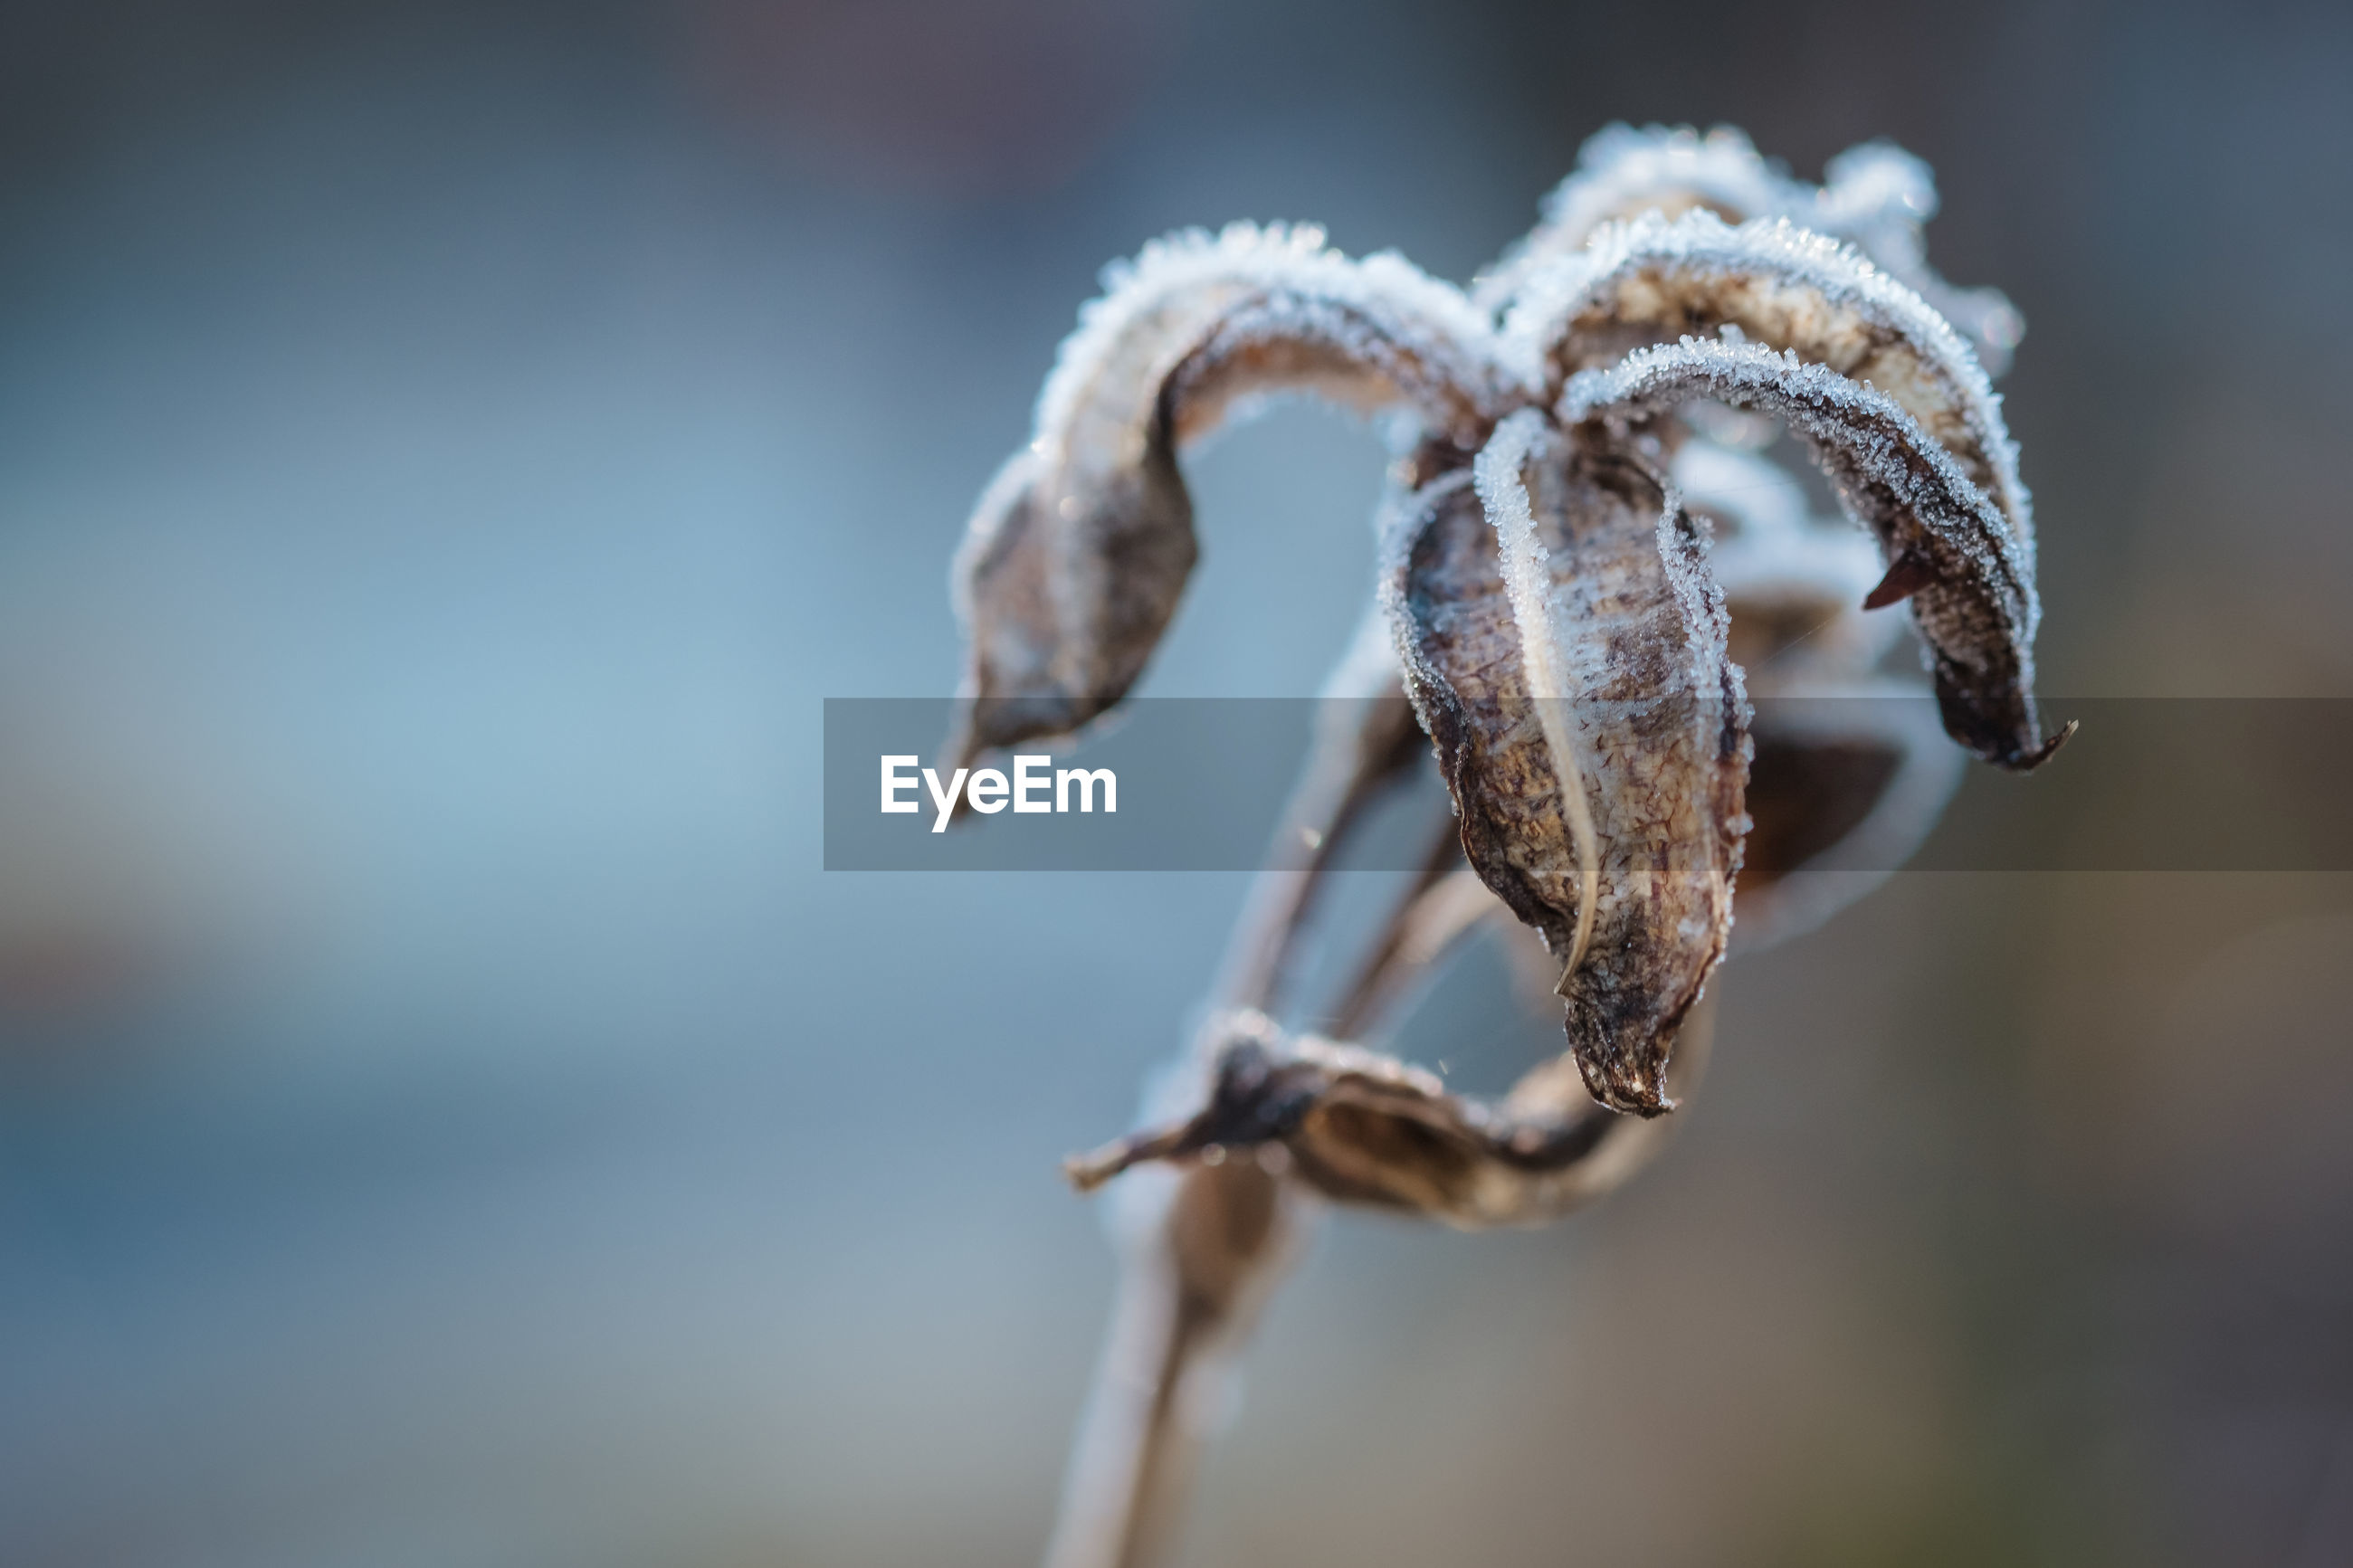 CLOSE-UP OF DRY FROZEN PLANT